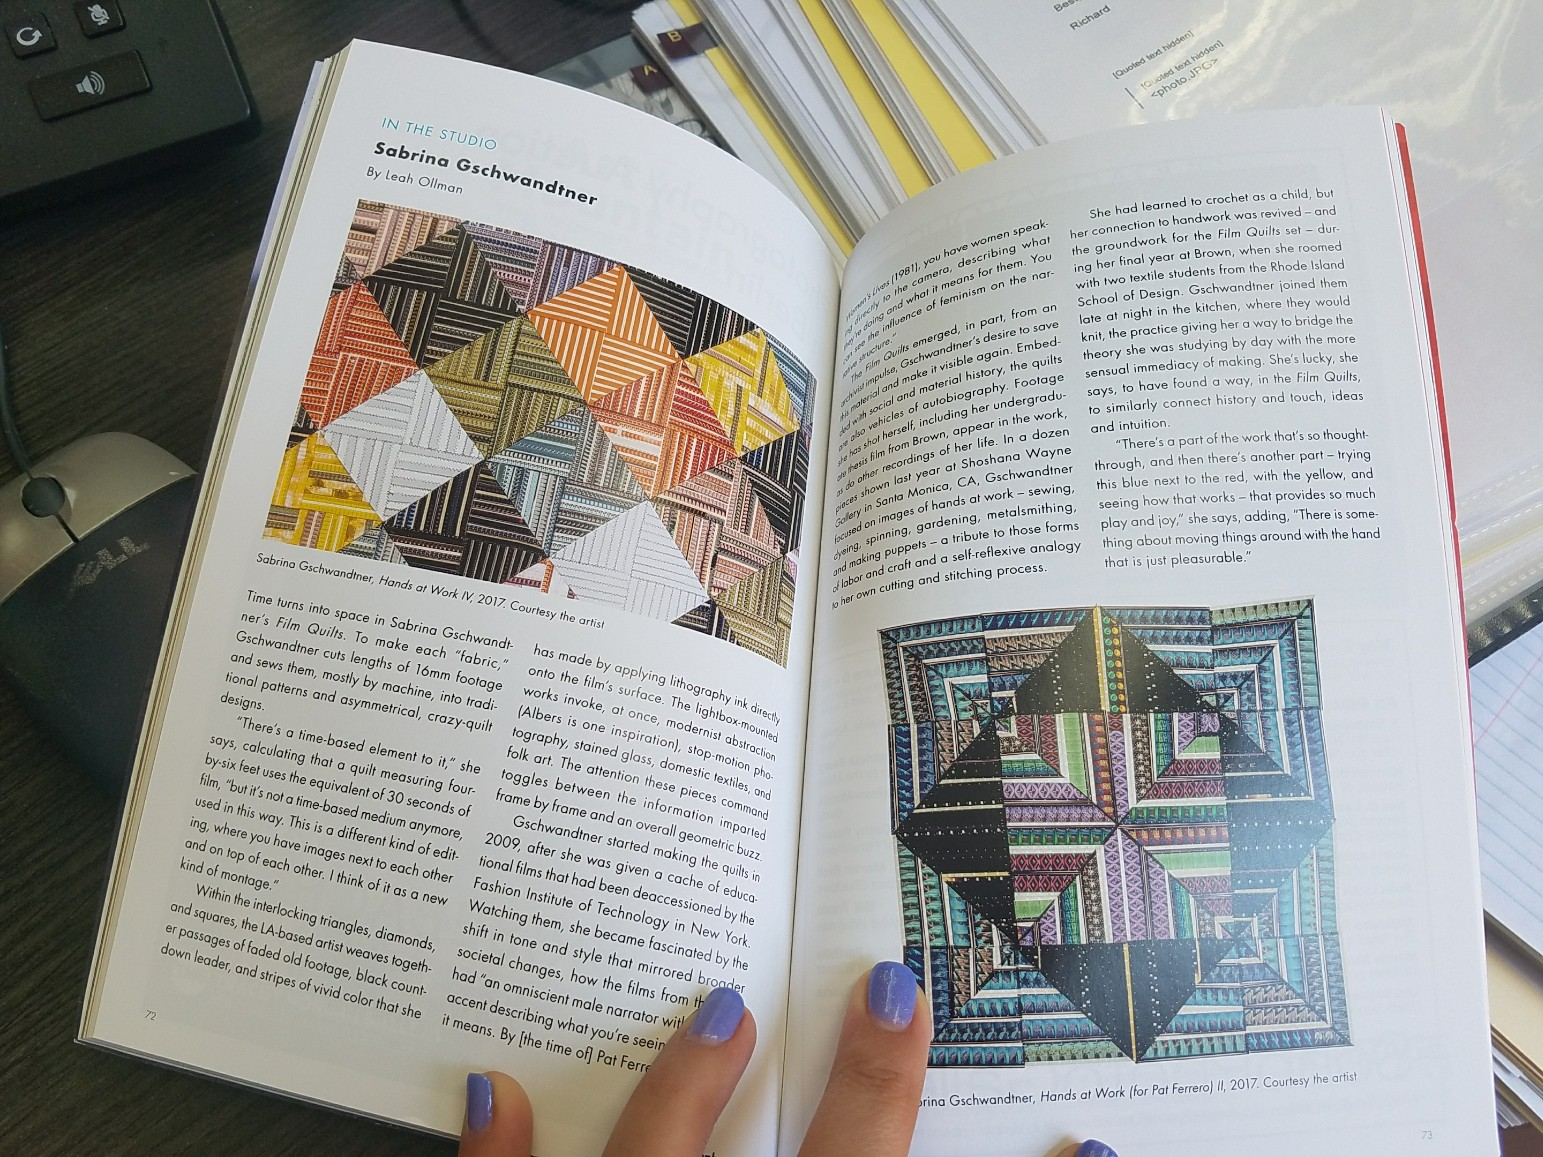 Photograph magazine article by Leah Ollman